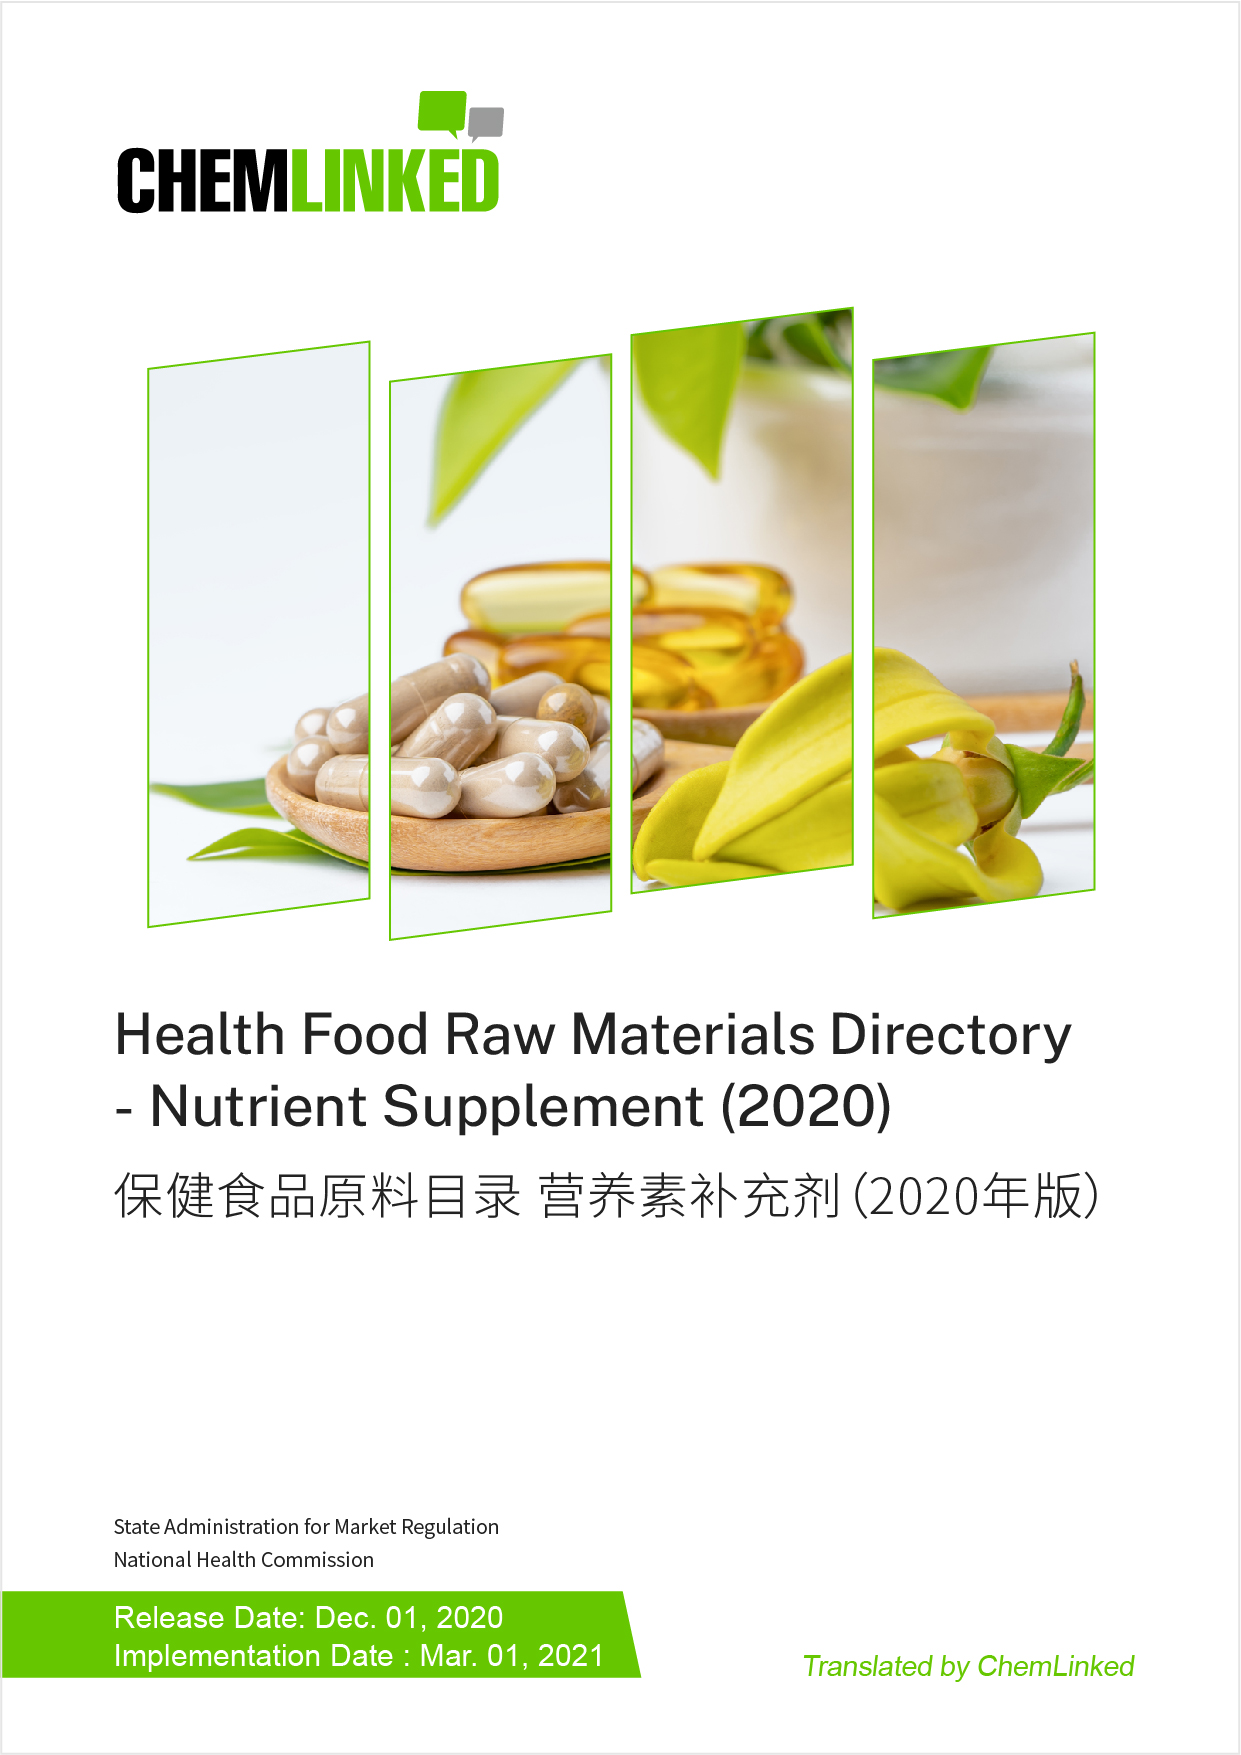 Health Food Raw Materials Directory - Nutrient Supplement (2020)